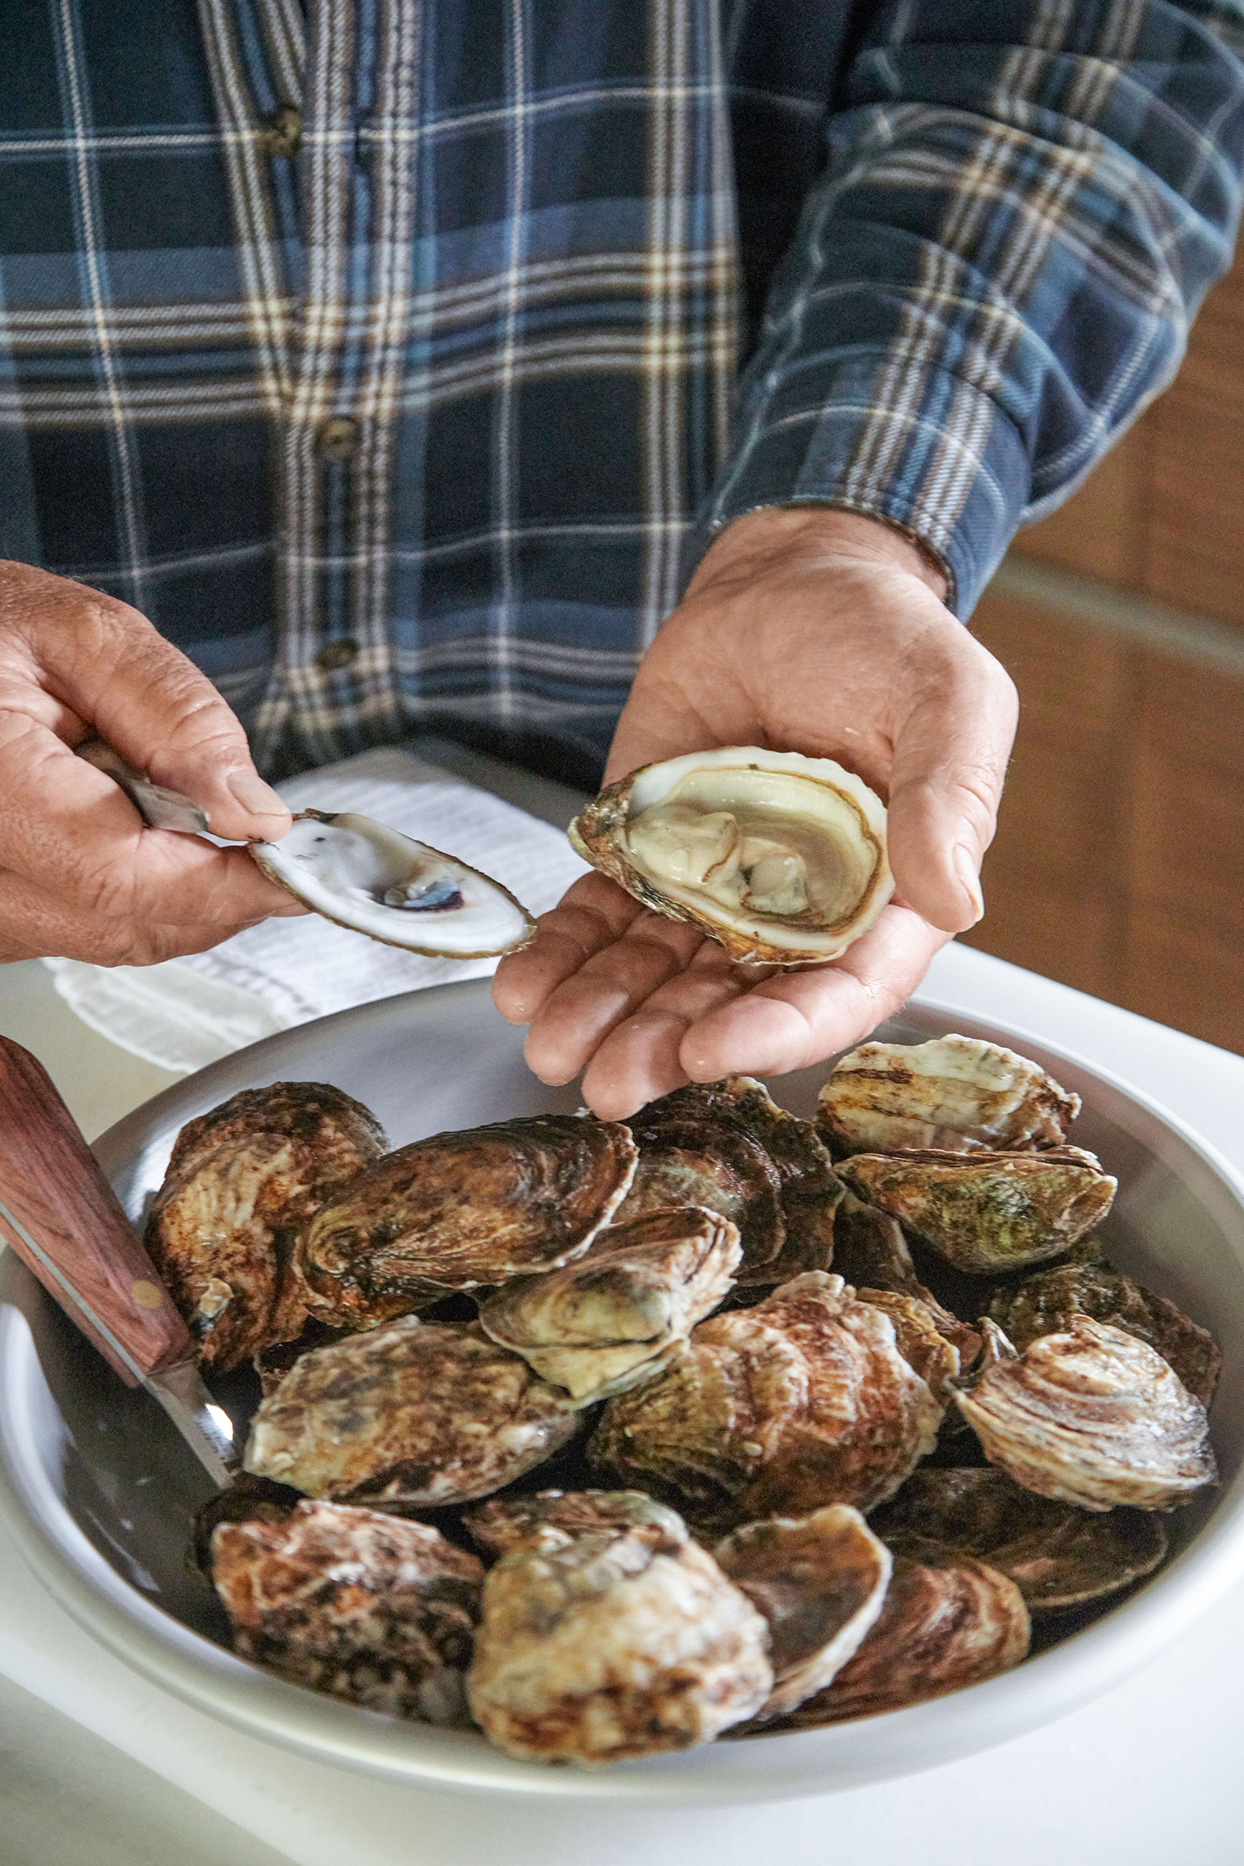 second step of shucking an oyster